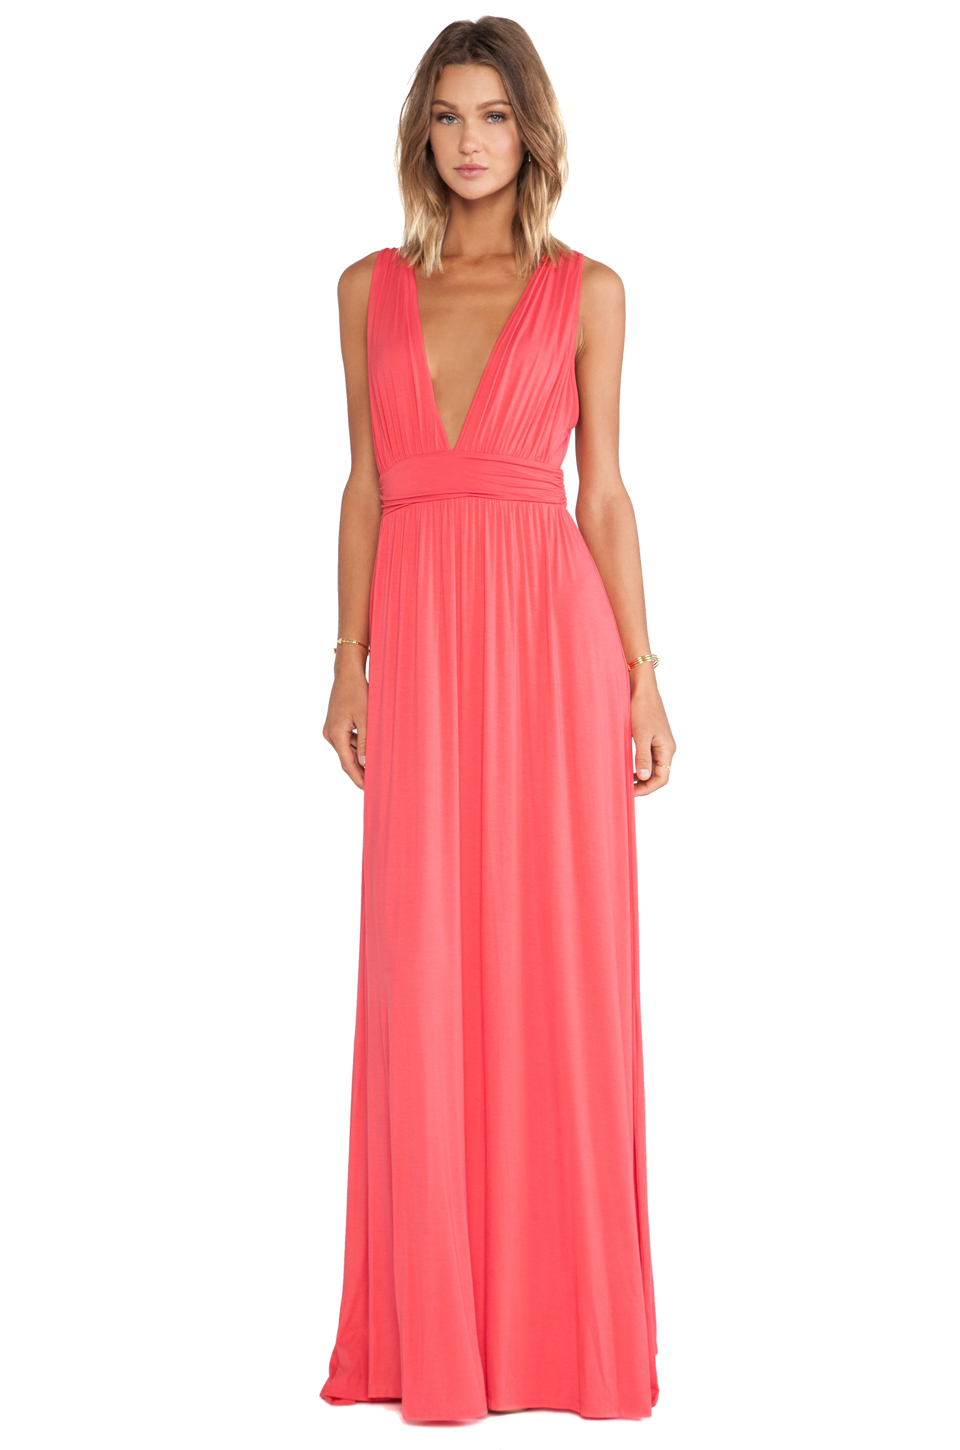 738be73c5a4 Lyst - Lovers + Friends Helena Maxi Dress in Pink